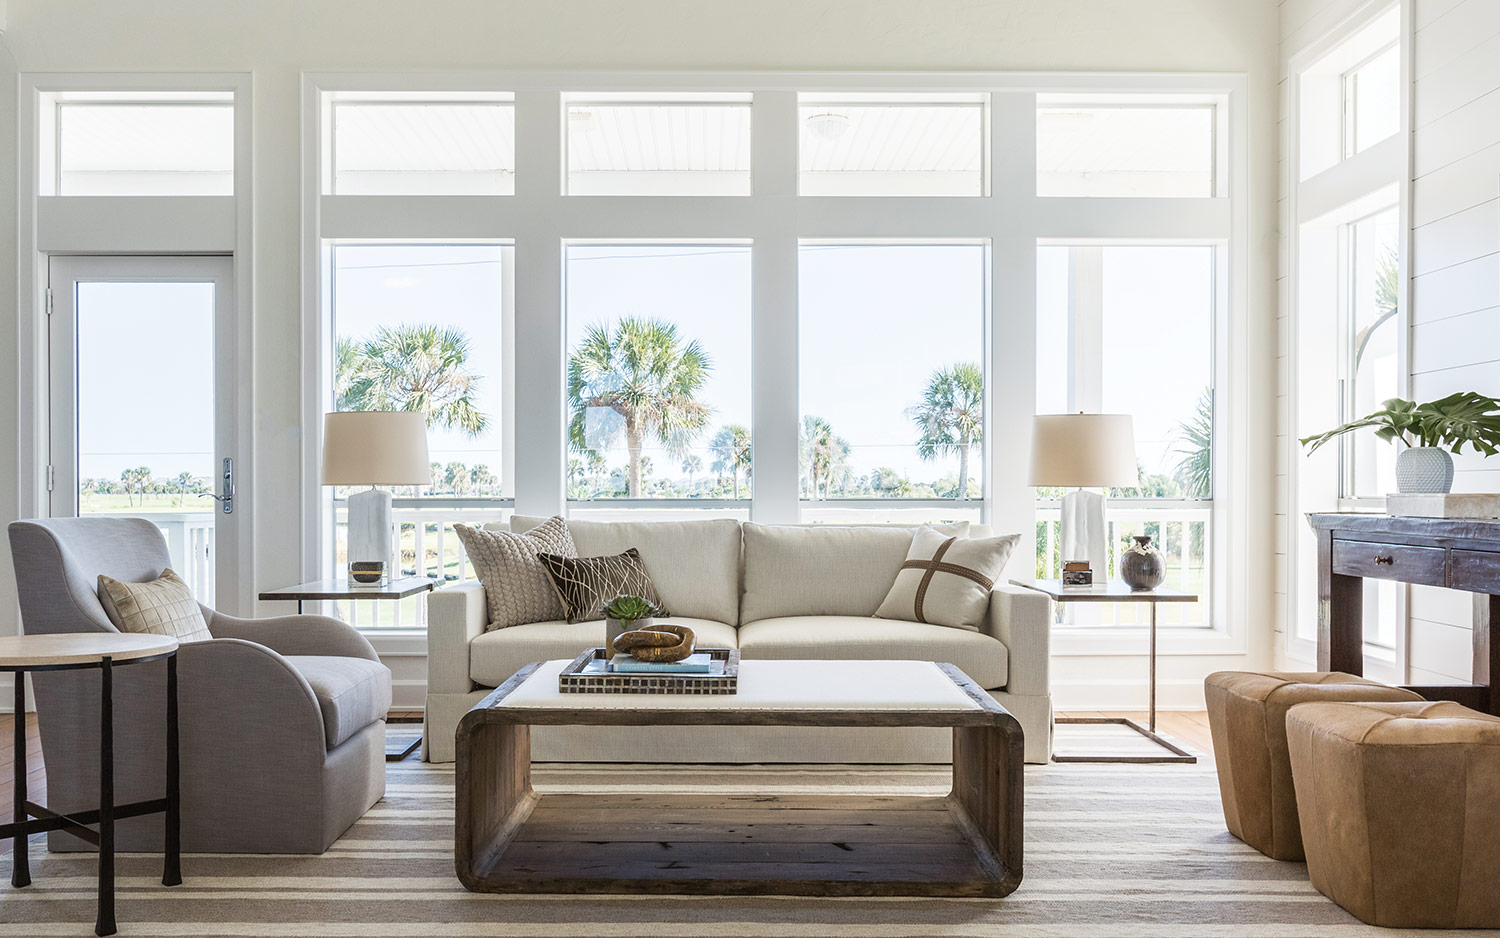 AT HOME ON THE COAST Author : BY Ashley Shaw Introduction : TEAMING UP WITH A CELEBRATED LOCAL DESIGNER, TEXAS HOMEOWNERS RENOVATE THEIR COASTAL HOUSE TO REFLECT THEIR MODERN STYLE AND LOVE OF GATHERING WITH FAMILY.